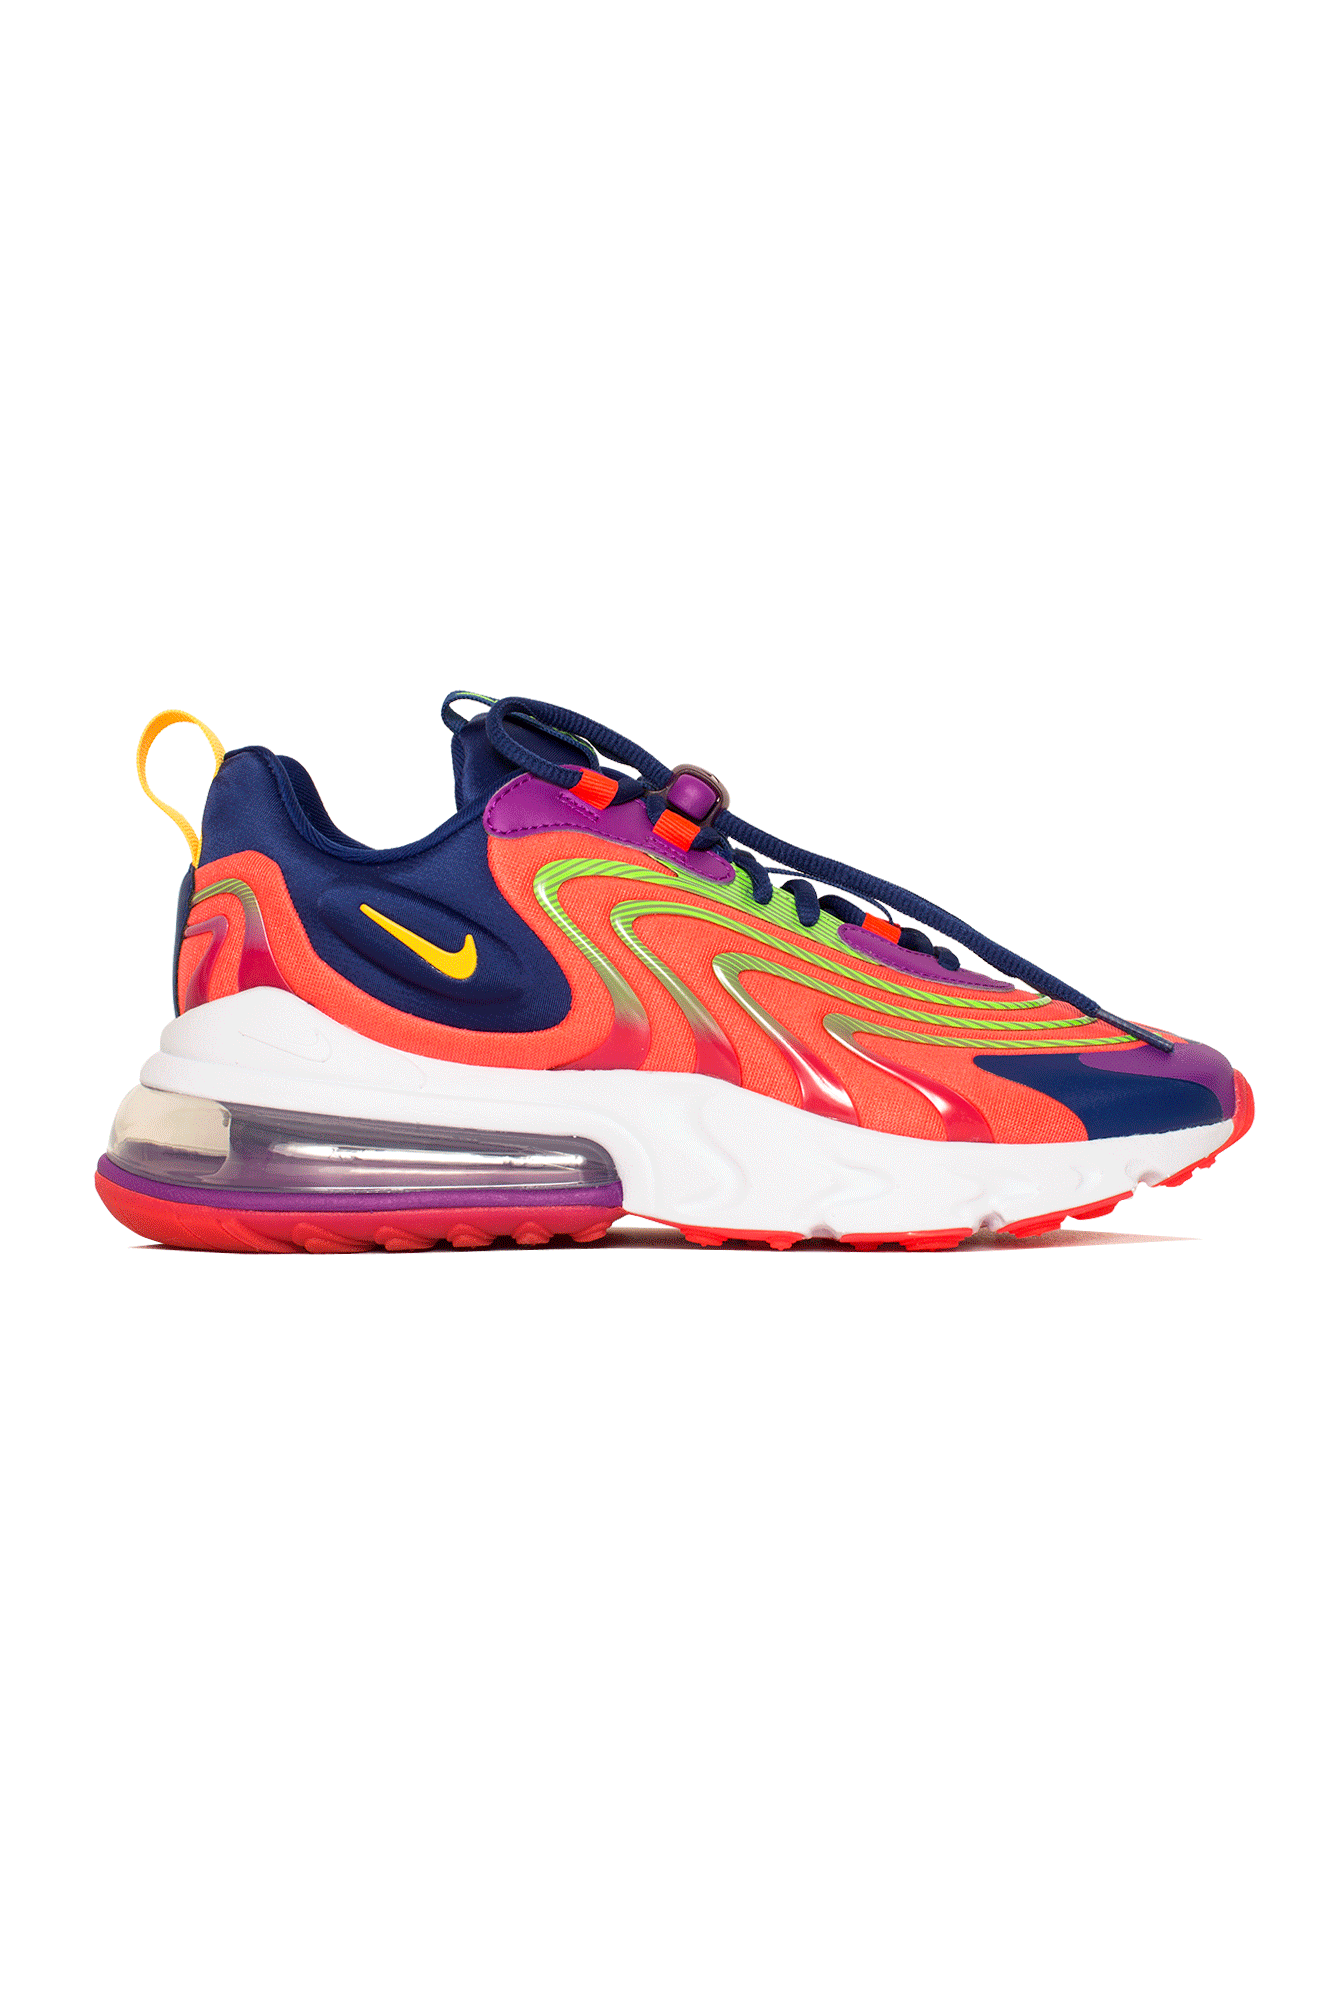 Air Max 270 React ENG Arancione